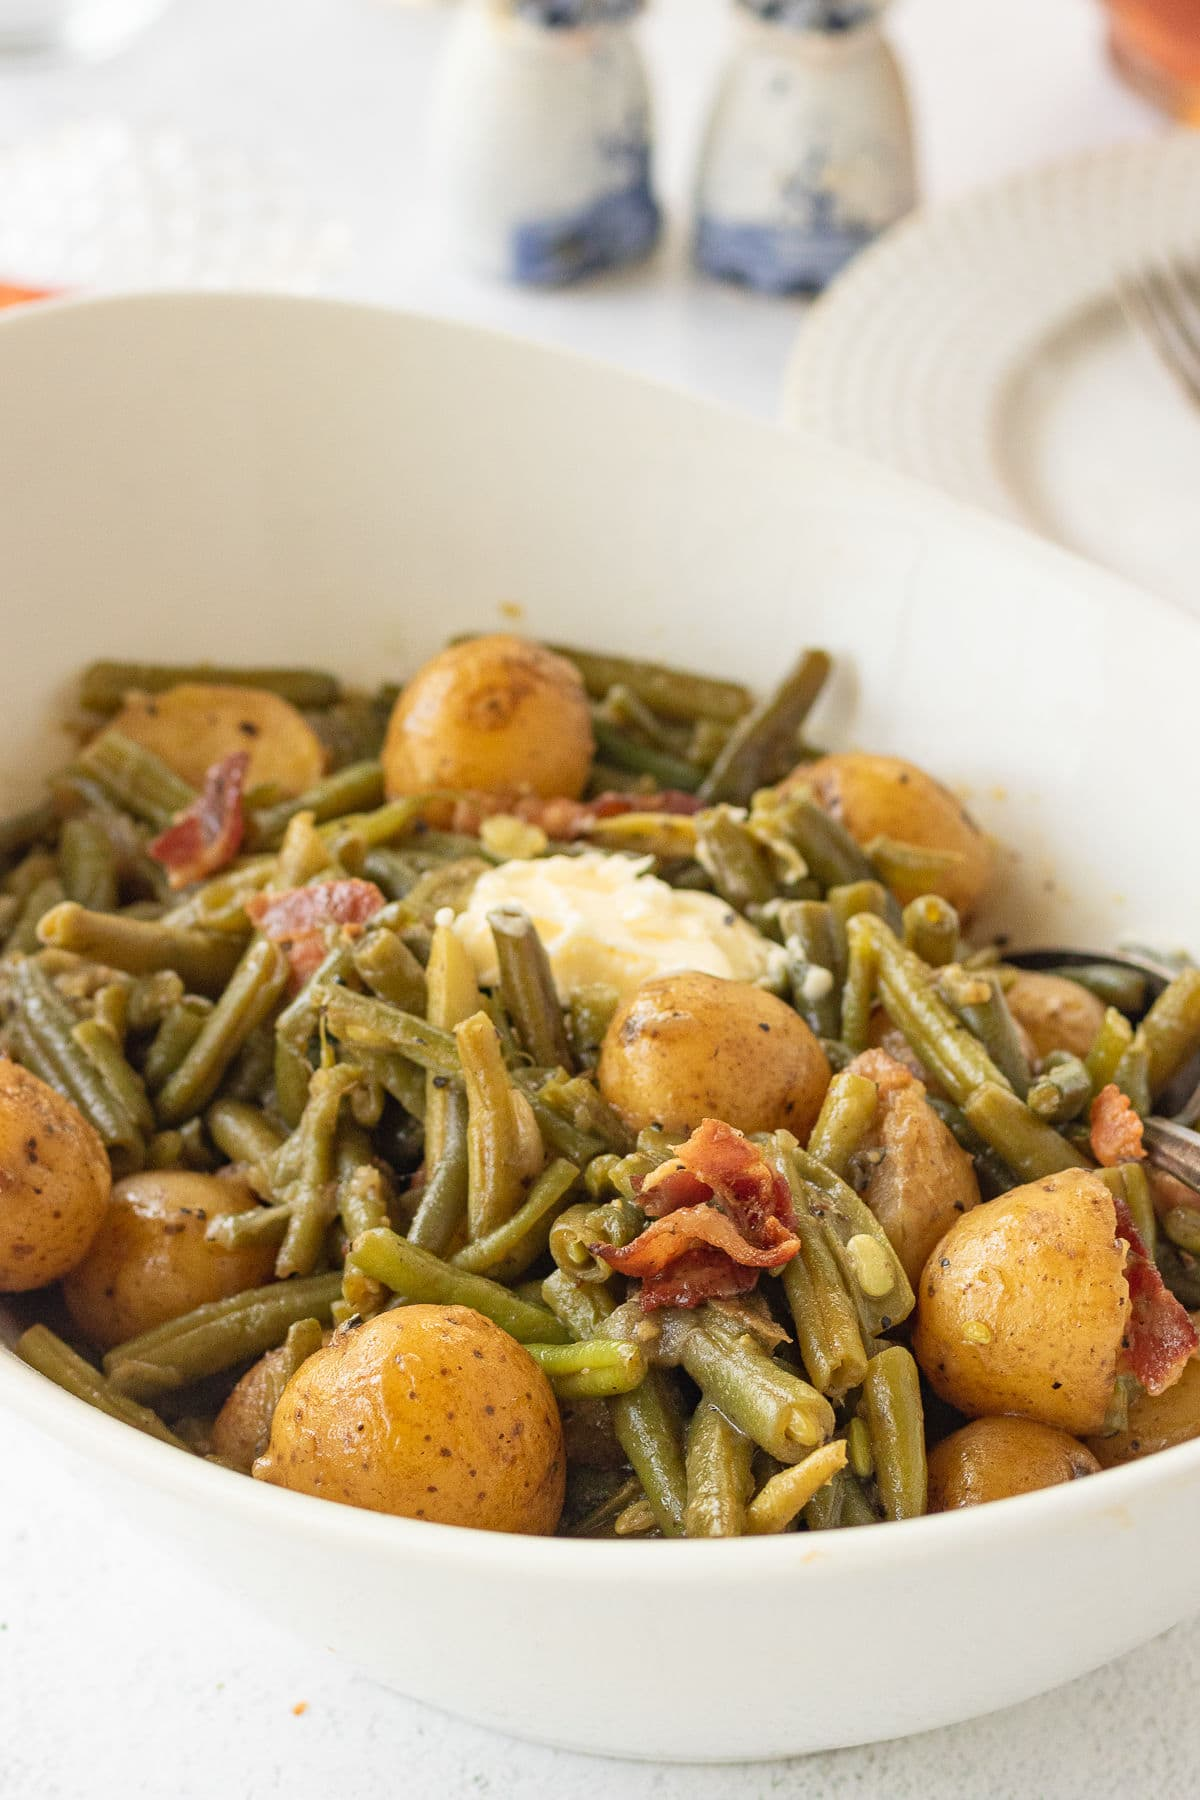 Closeup of a serving dish with cooked green beans and tender new potatoes in it.